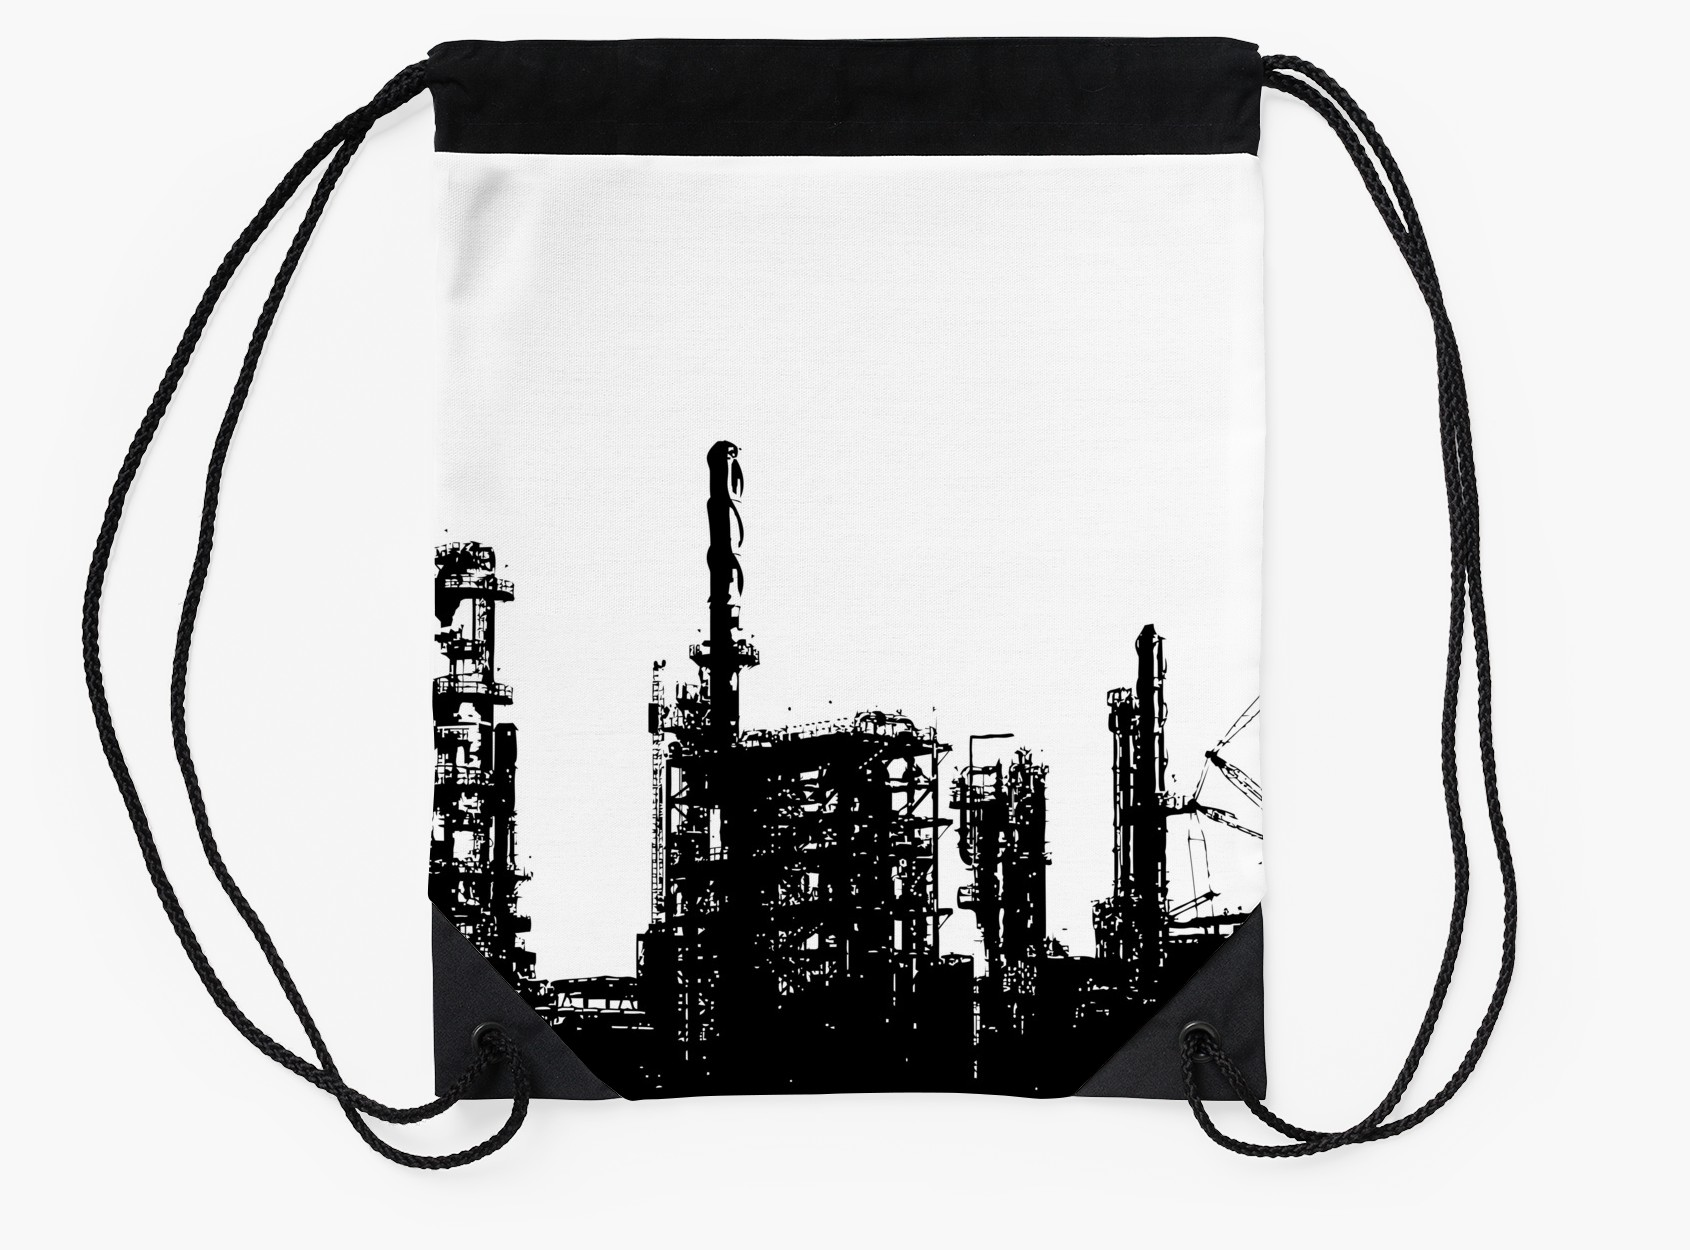 1690x1250 Vintage Oil Refinery Architectural Silhouette Drawstring Bags By